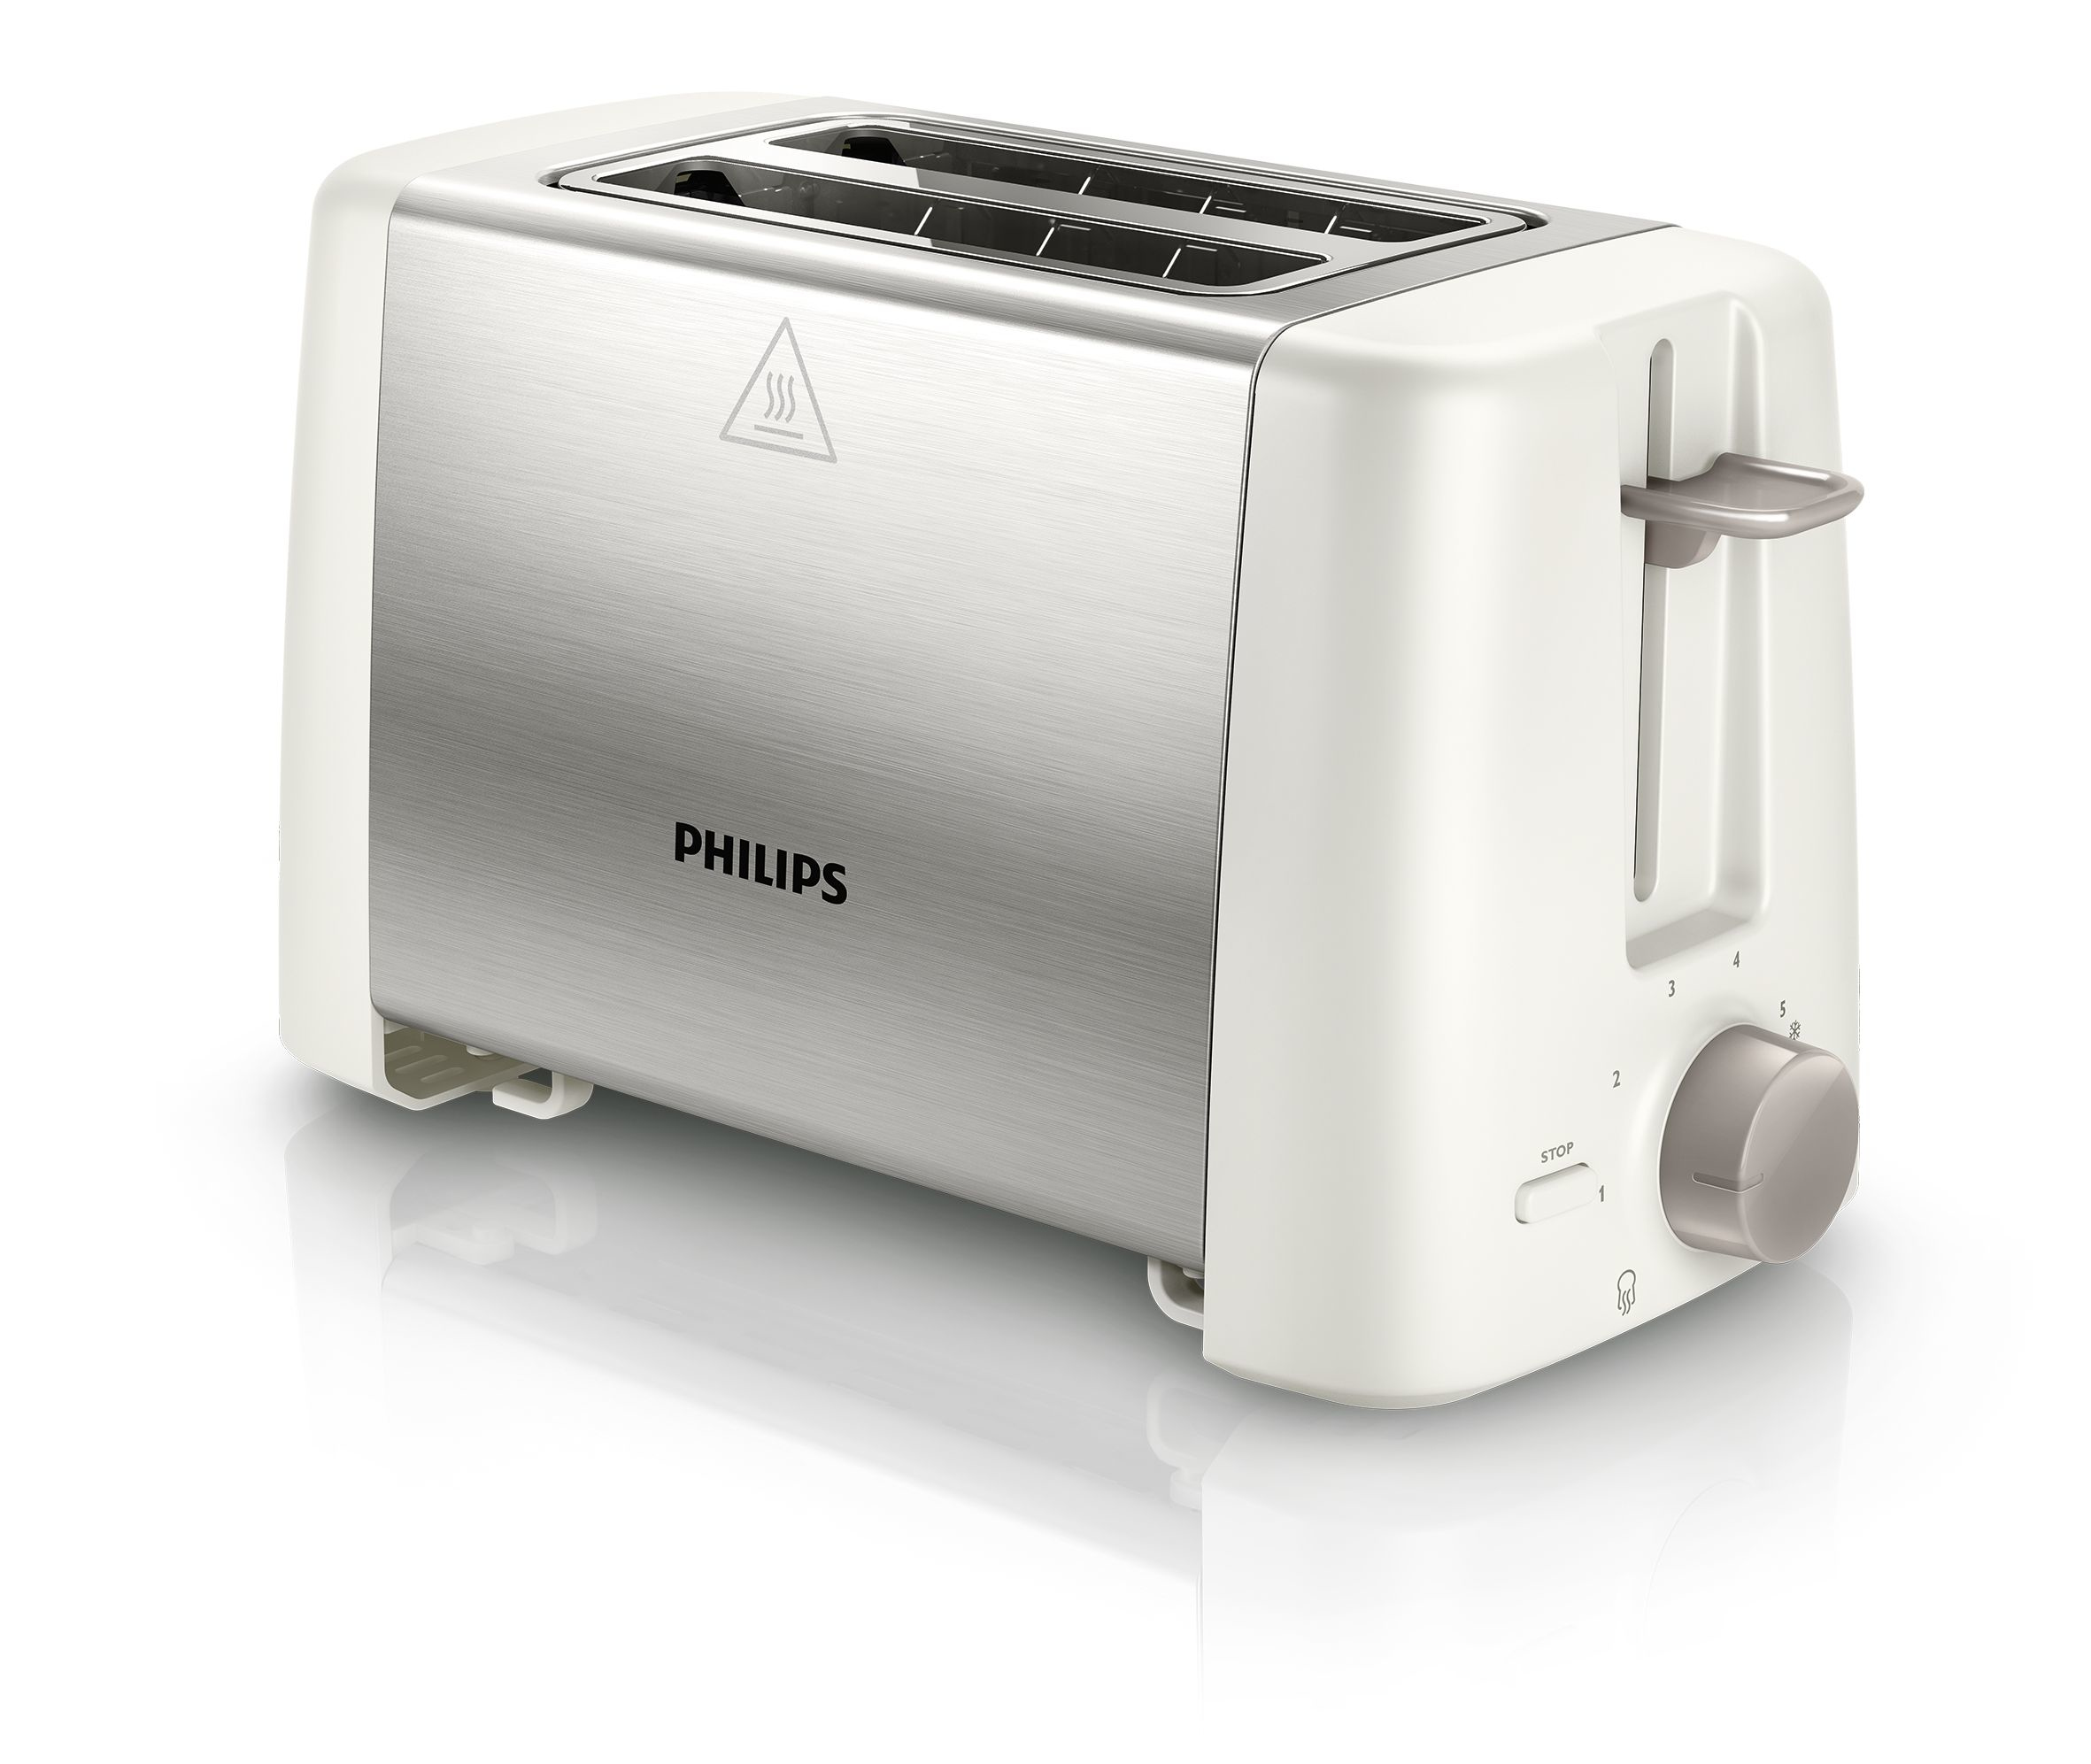 Tostadora - Philips Daily Collection HD4825/00 2slice(s) 800W Acero inoxidable, Color blanco